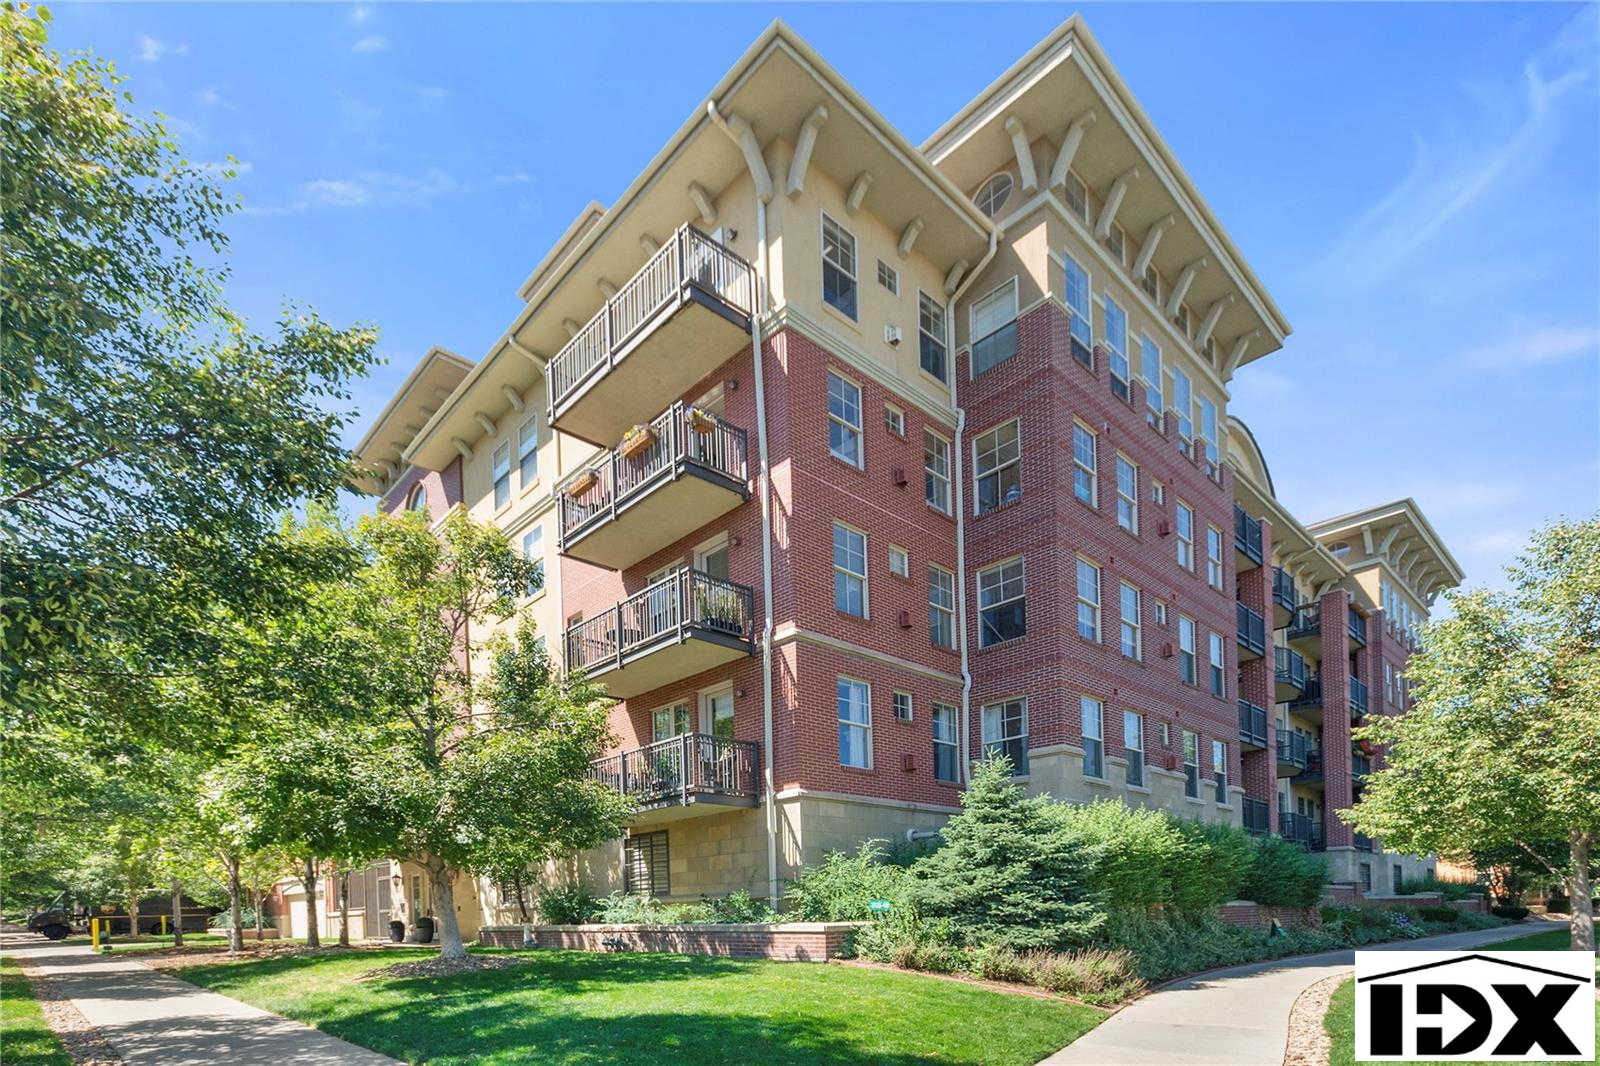 1699 North Downing Street #105, Denver, CO 80218 now has a new price of $2,350!